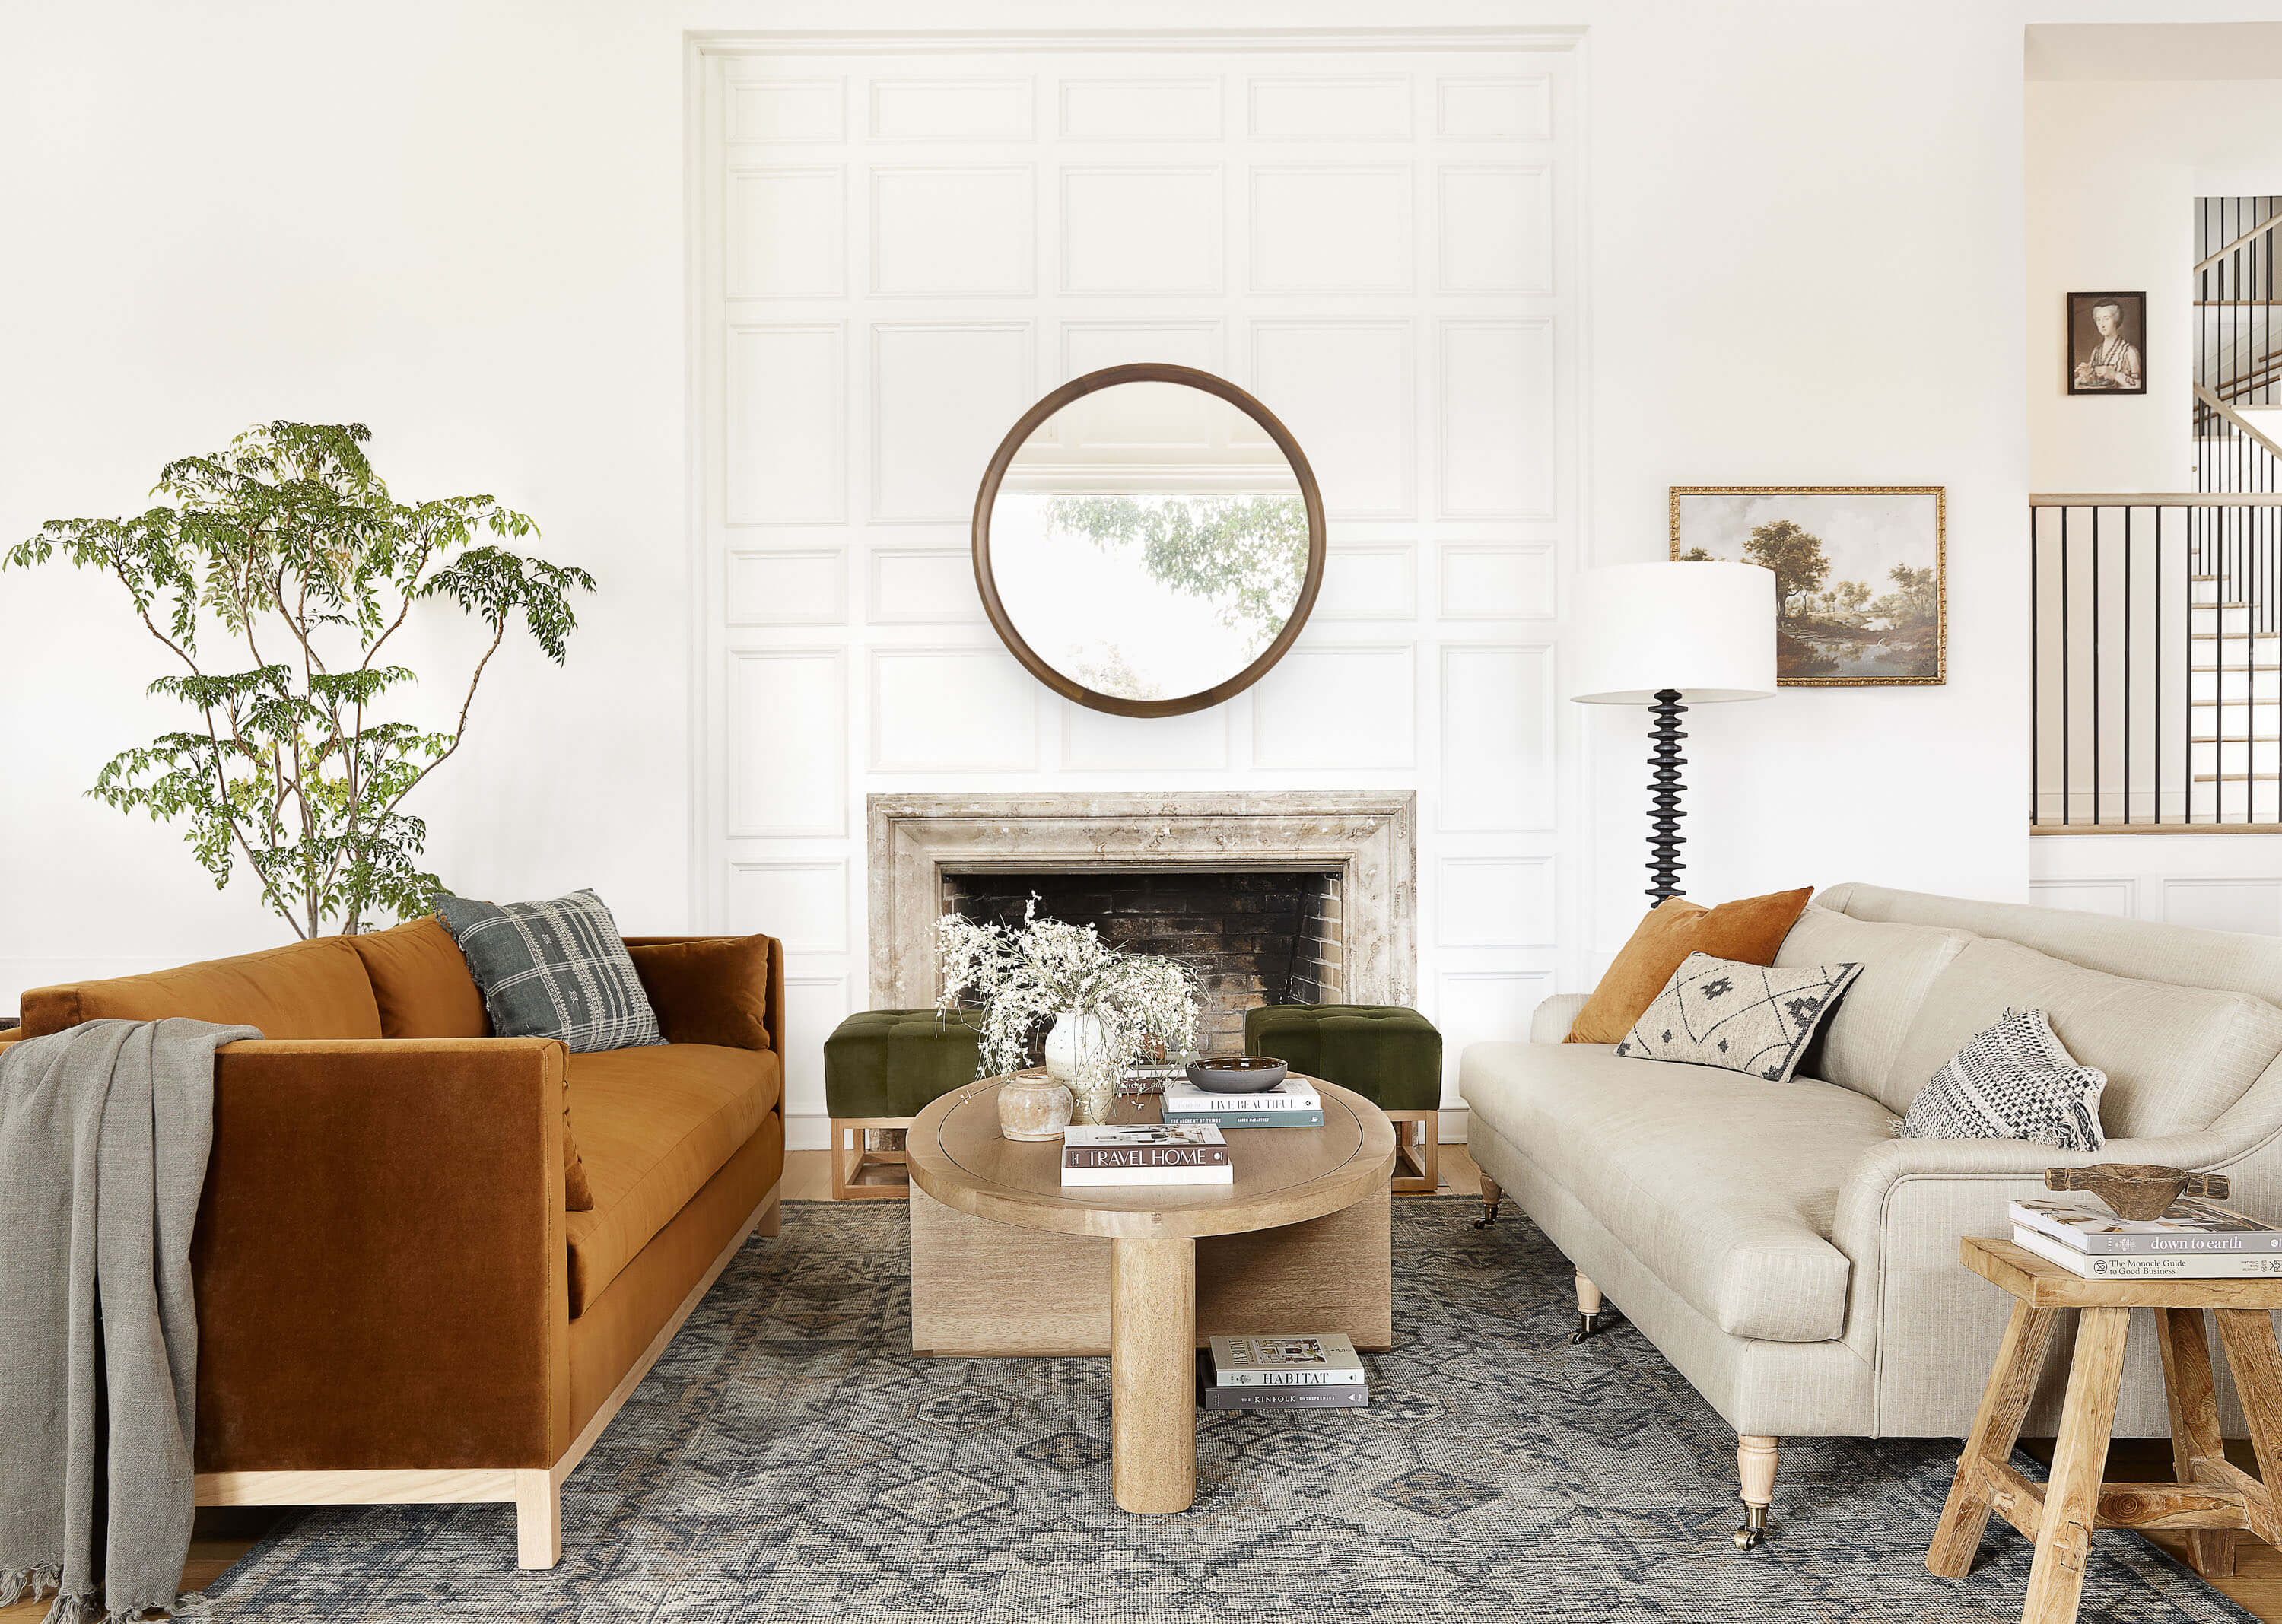 THE HOLLINGWORTH SOFA & RIVINGTON SOFA